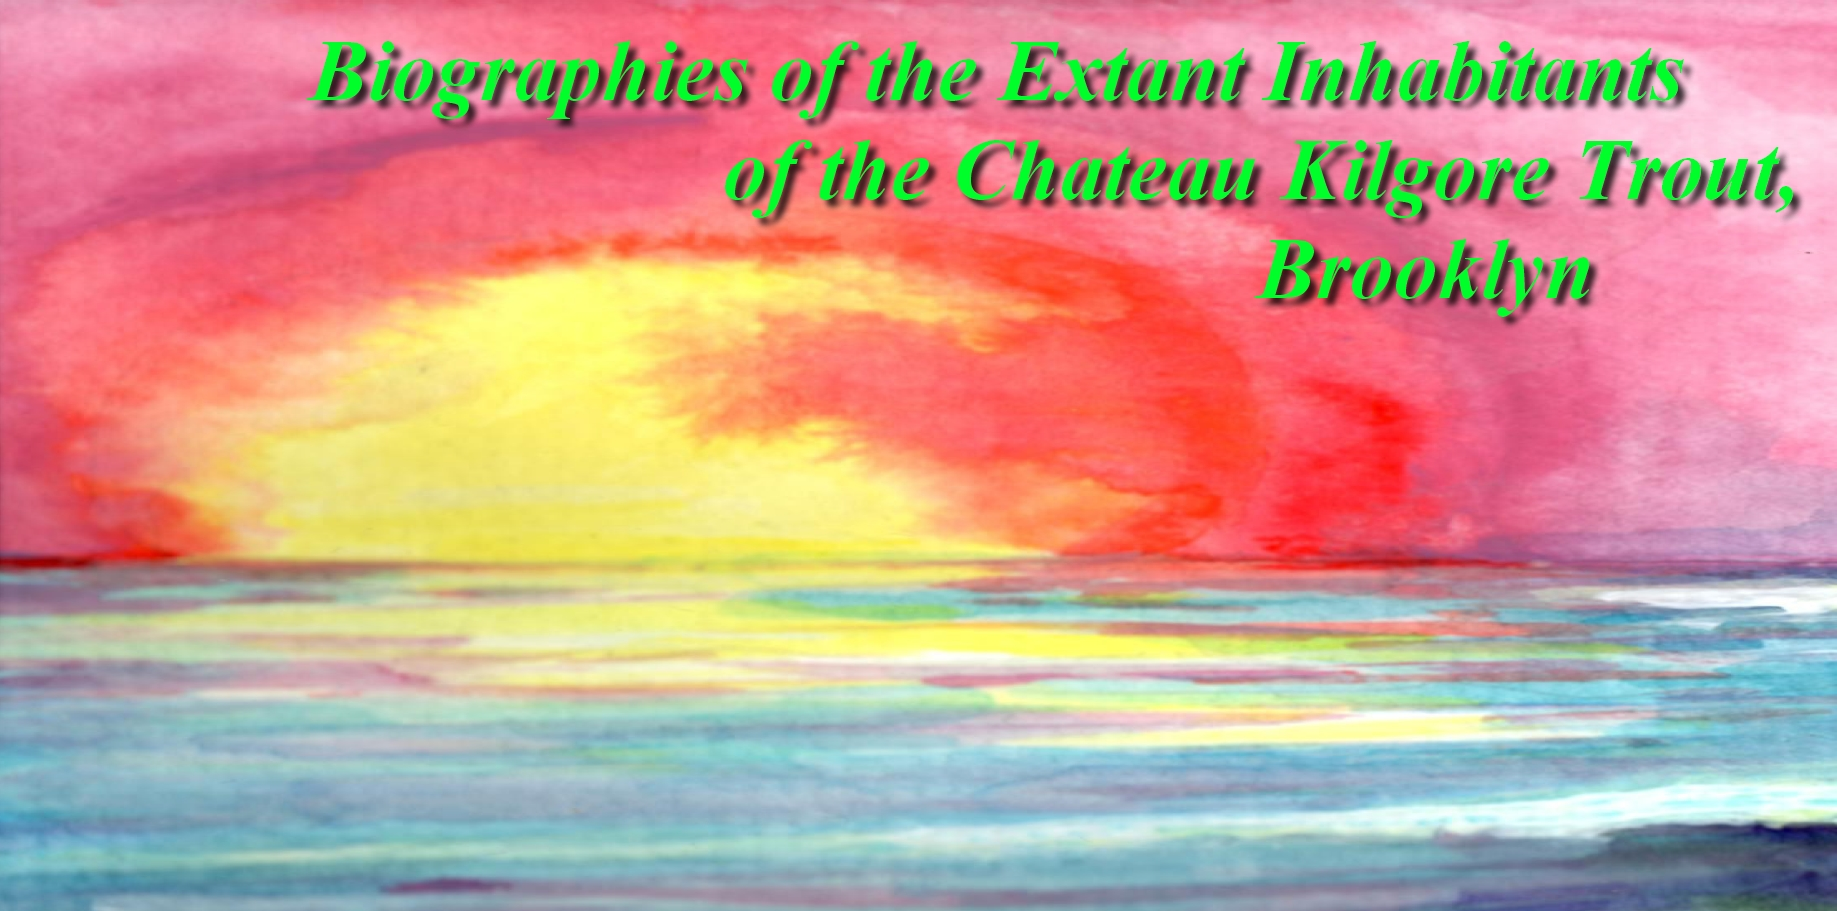 Biographies of the Extant Inhabitants of the Chateau Kilgore Trout, Brooklyn